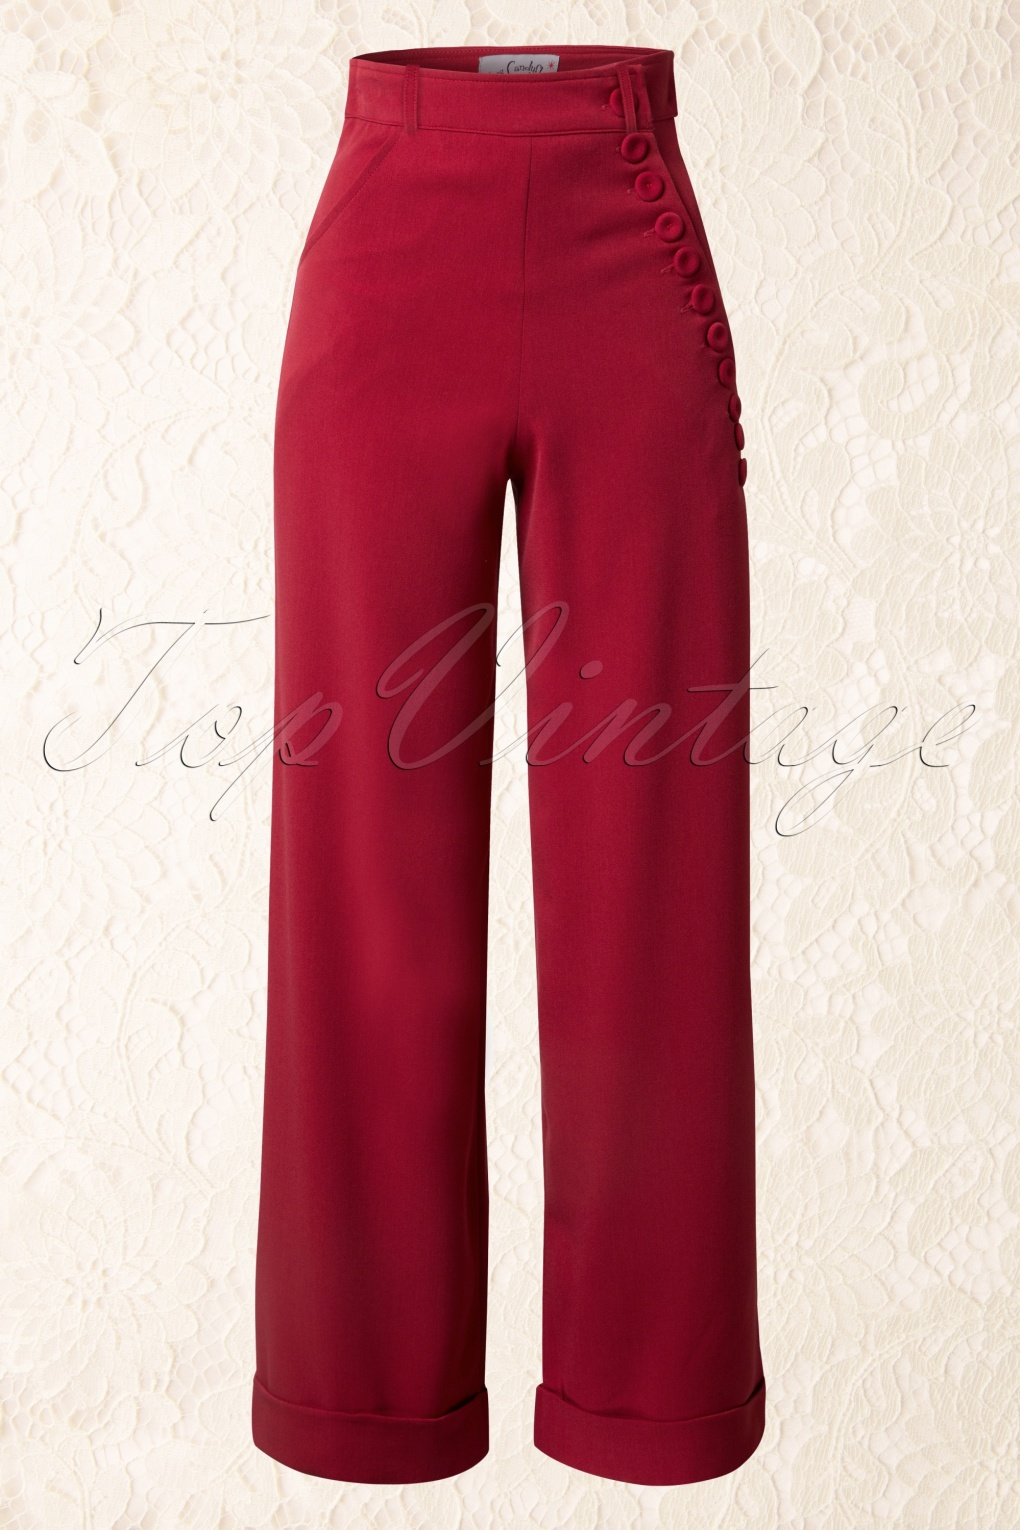 40s Nicolette High Waisted Swing Trousers Red